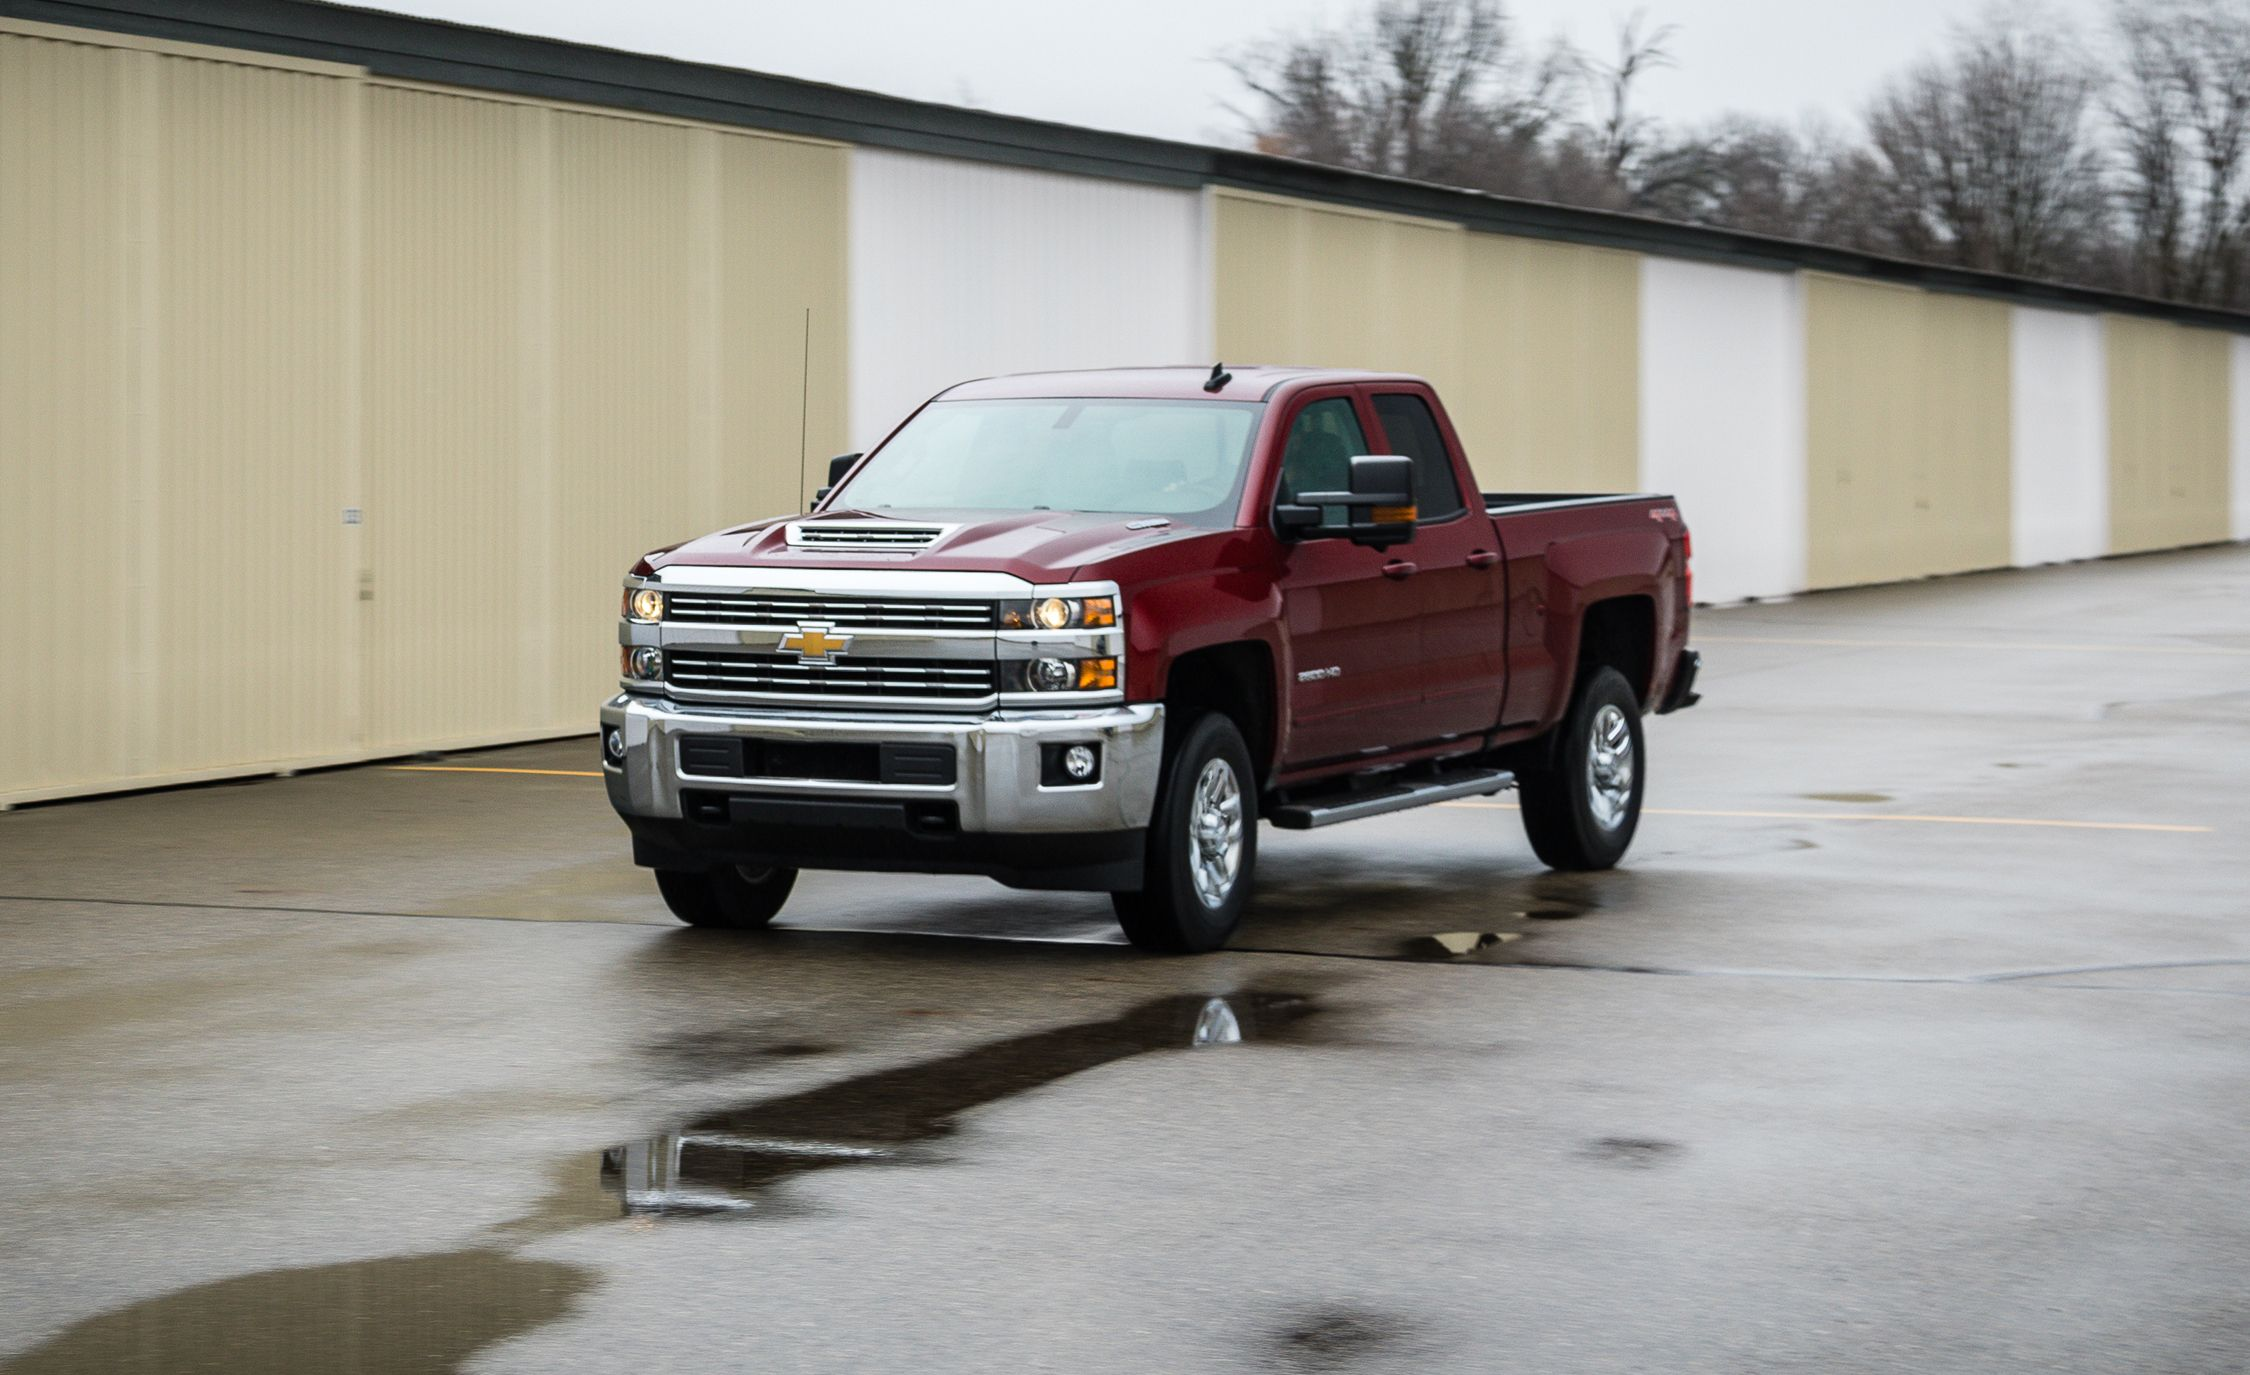 2020 Chevrolet Silverado 2500HD Reviews | Chevrolet ...